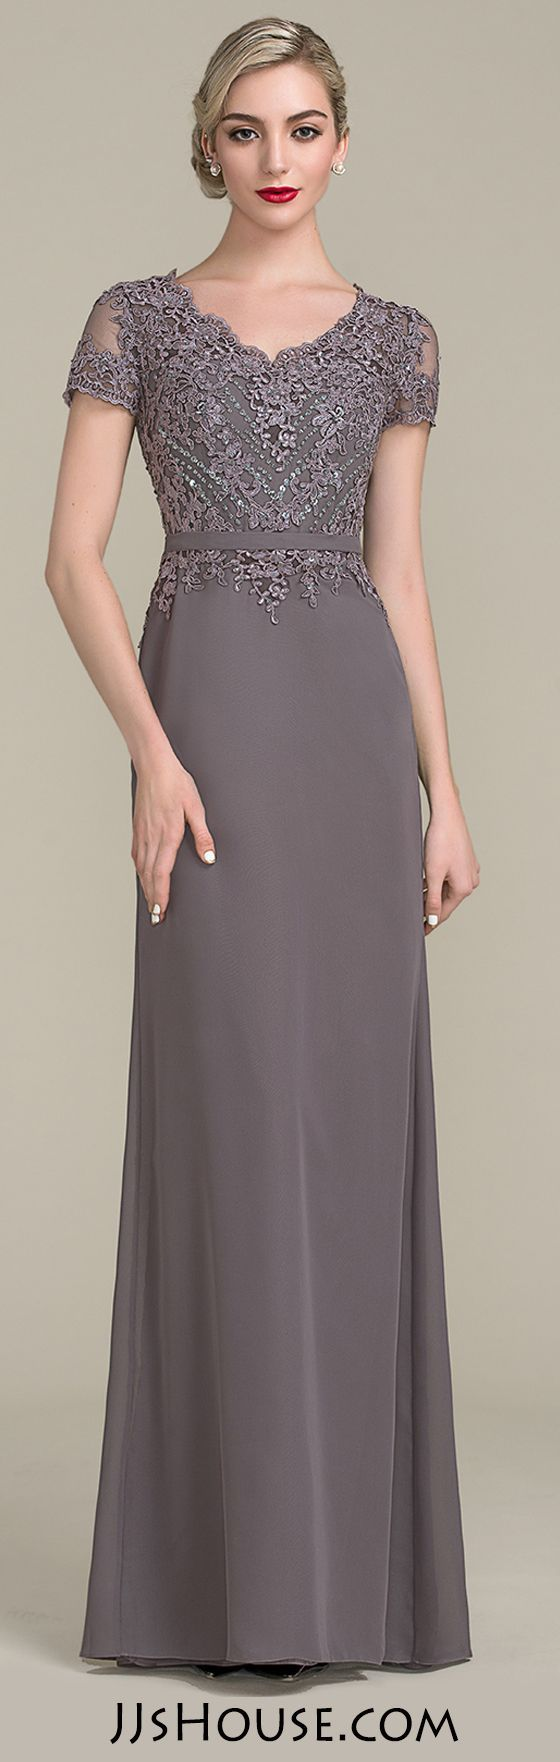 A-Line/Princess V-neck Floor-Length Chiffon Lace Mother of the Bride Dress With Beading Sequins #JJsHouse